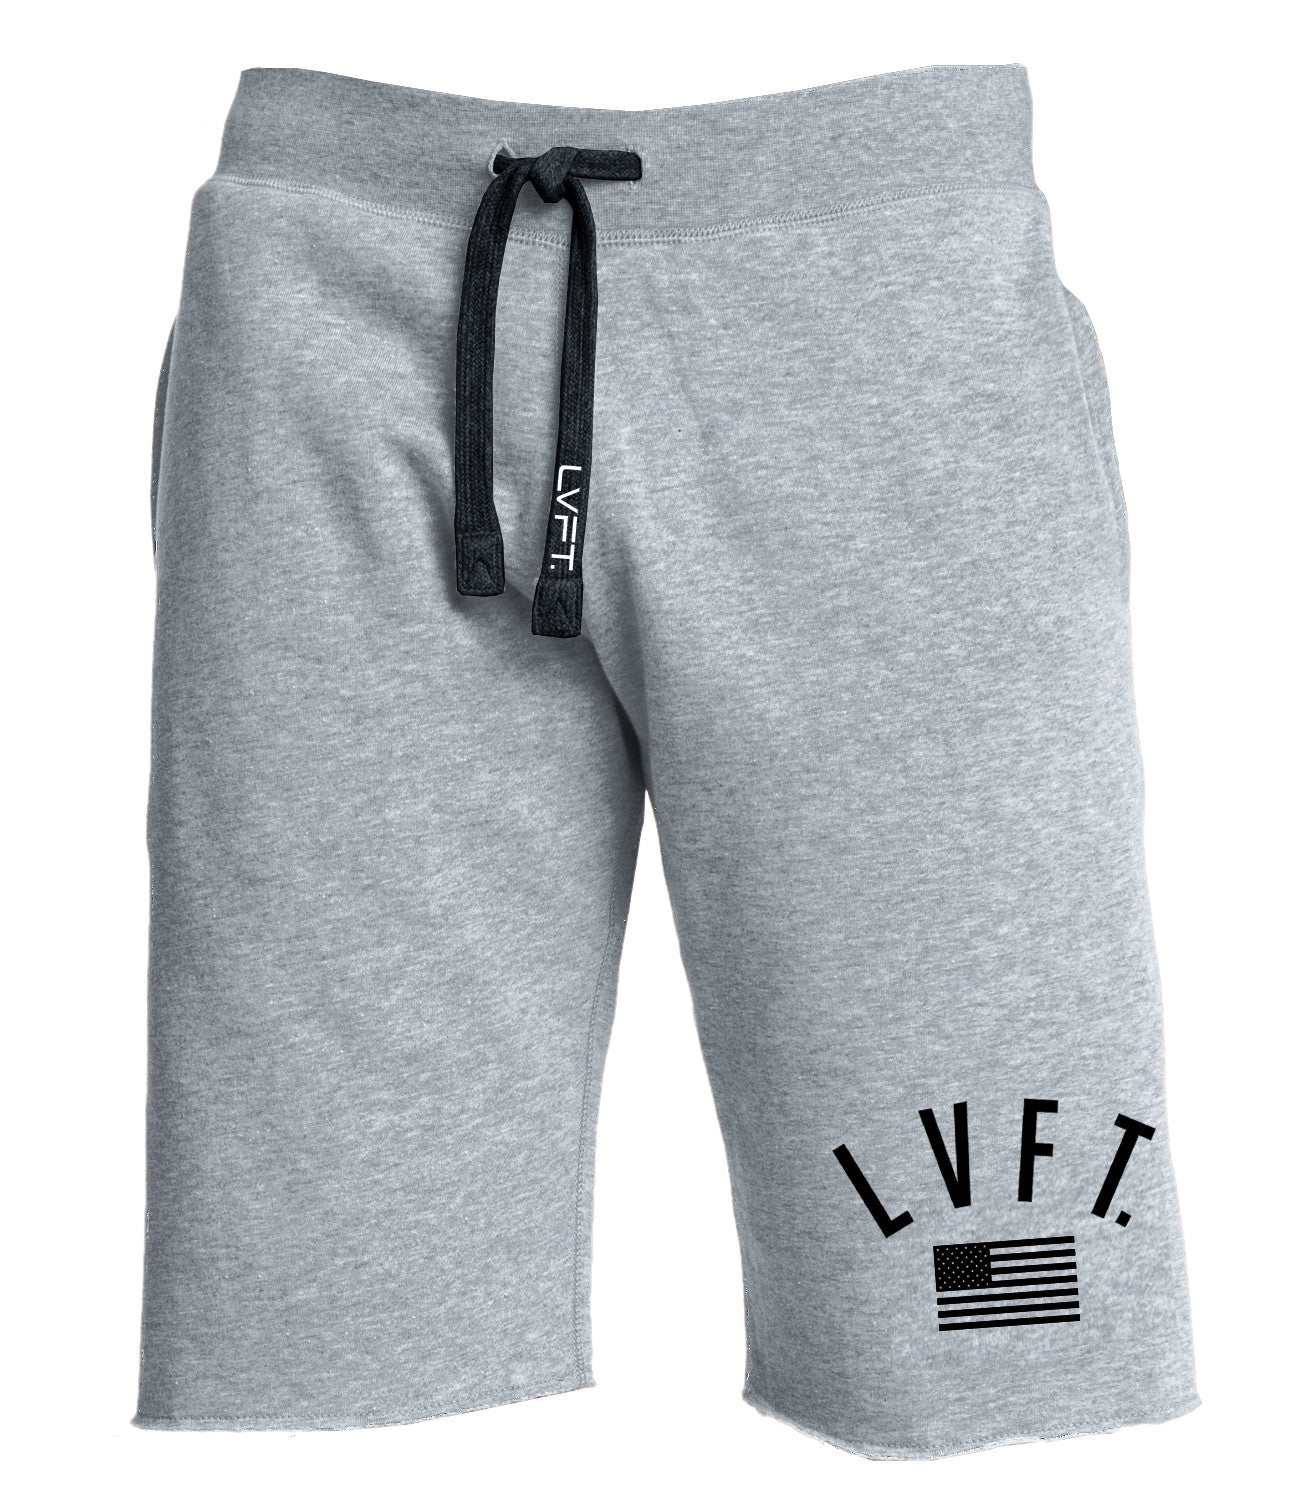 USA Sweat Shorts